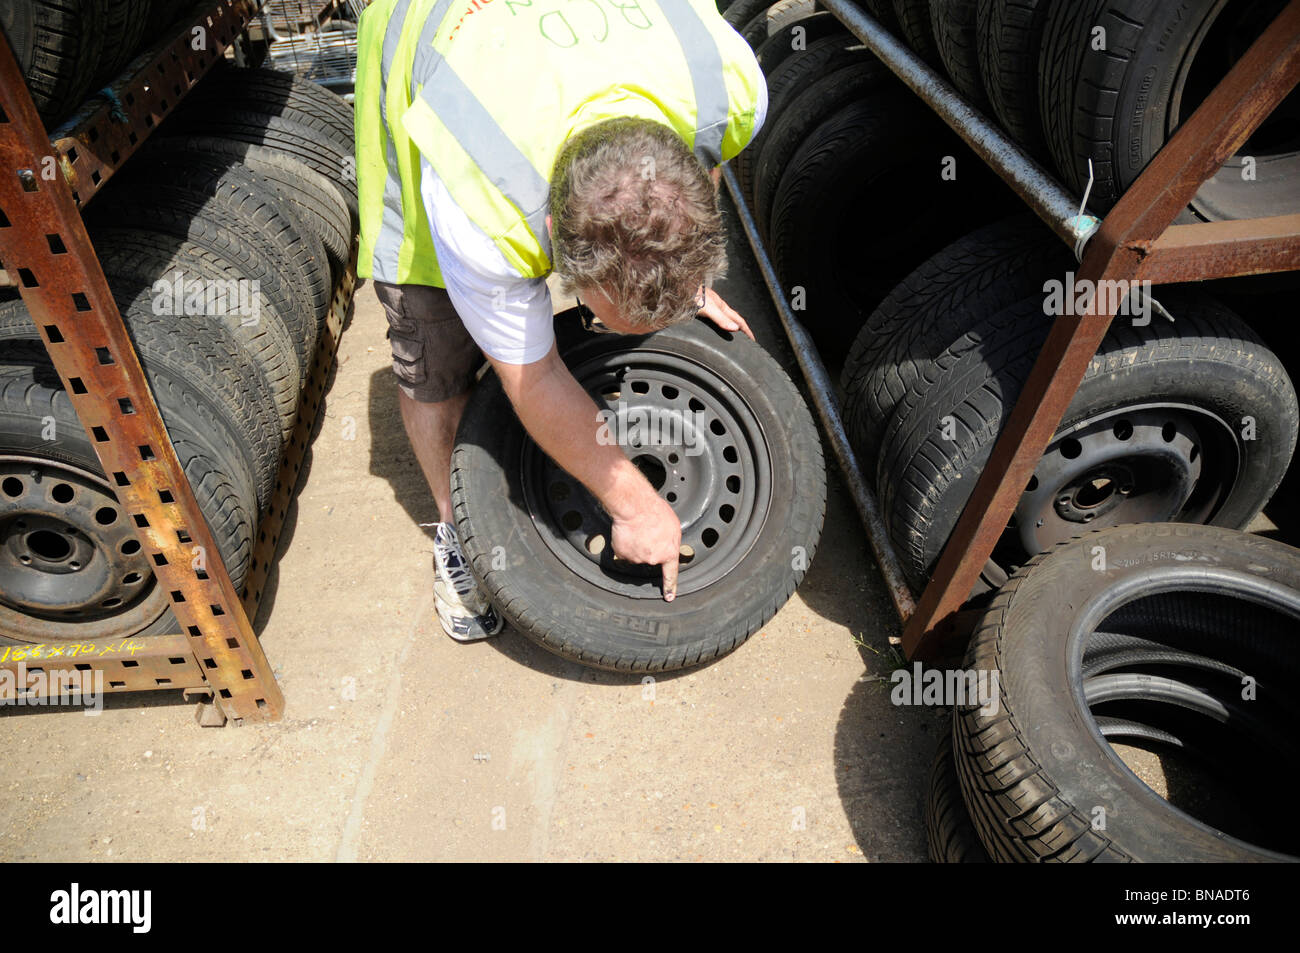 Man wearing hi-vis vest inspecting wheel and tyre in a car breakers yard. - Stock Image